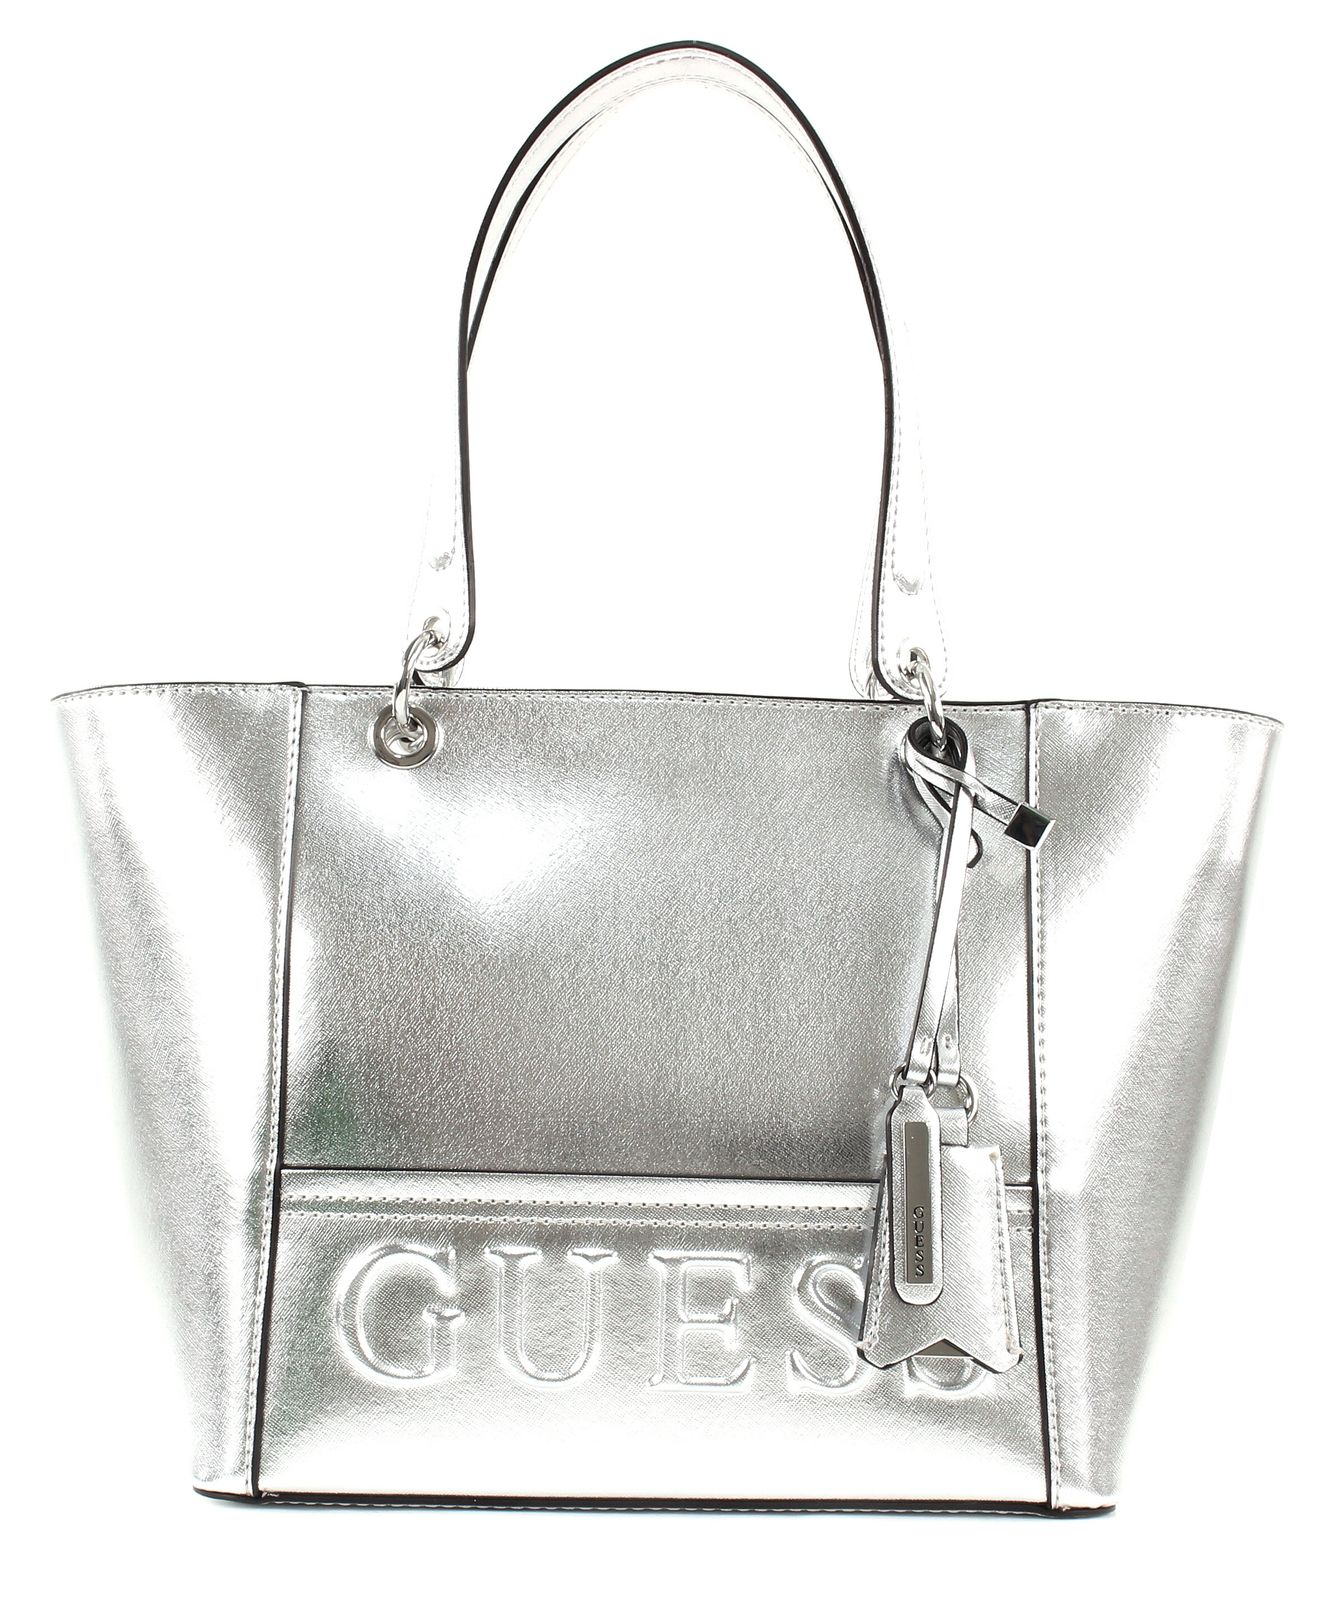 guess kamryn tote shopper schultertasche tasche silver. Black Bedroom Furniture Sets. Home Design Ideas